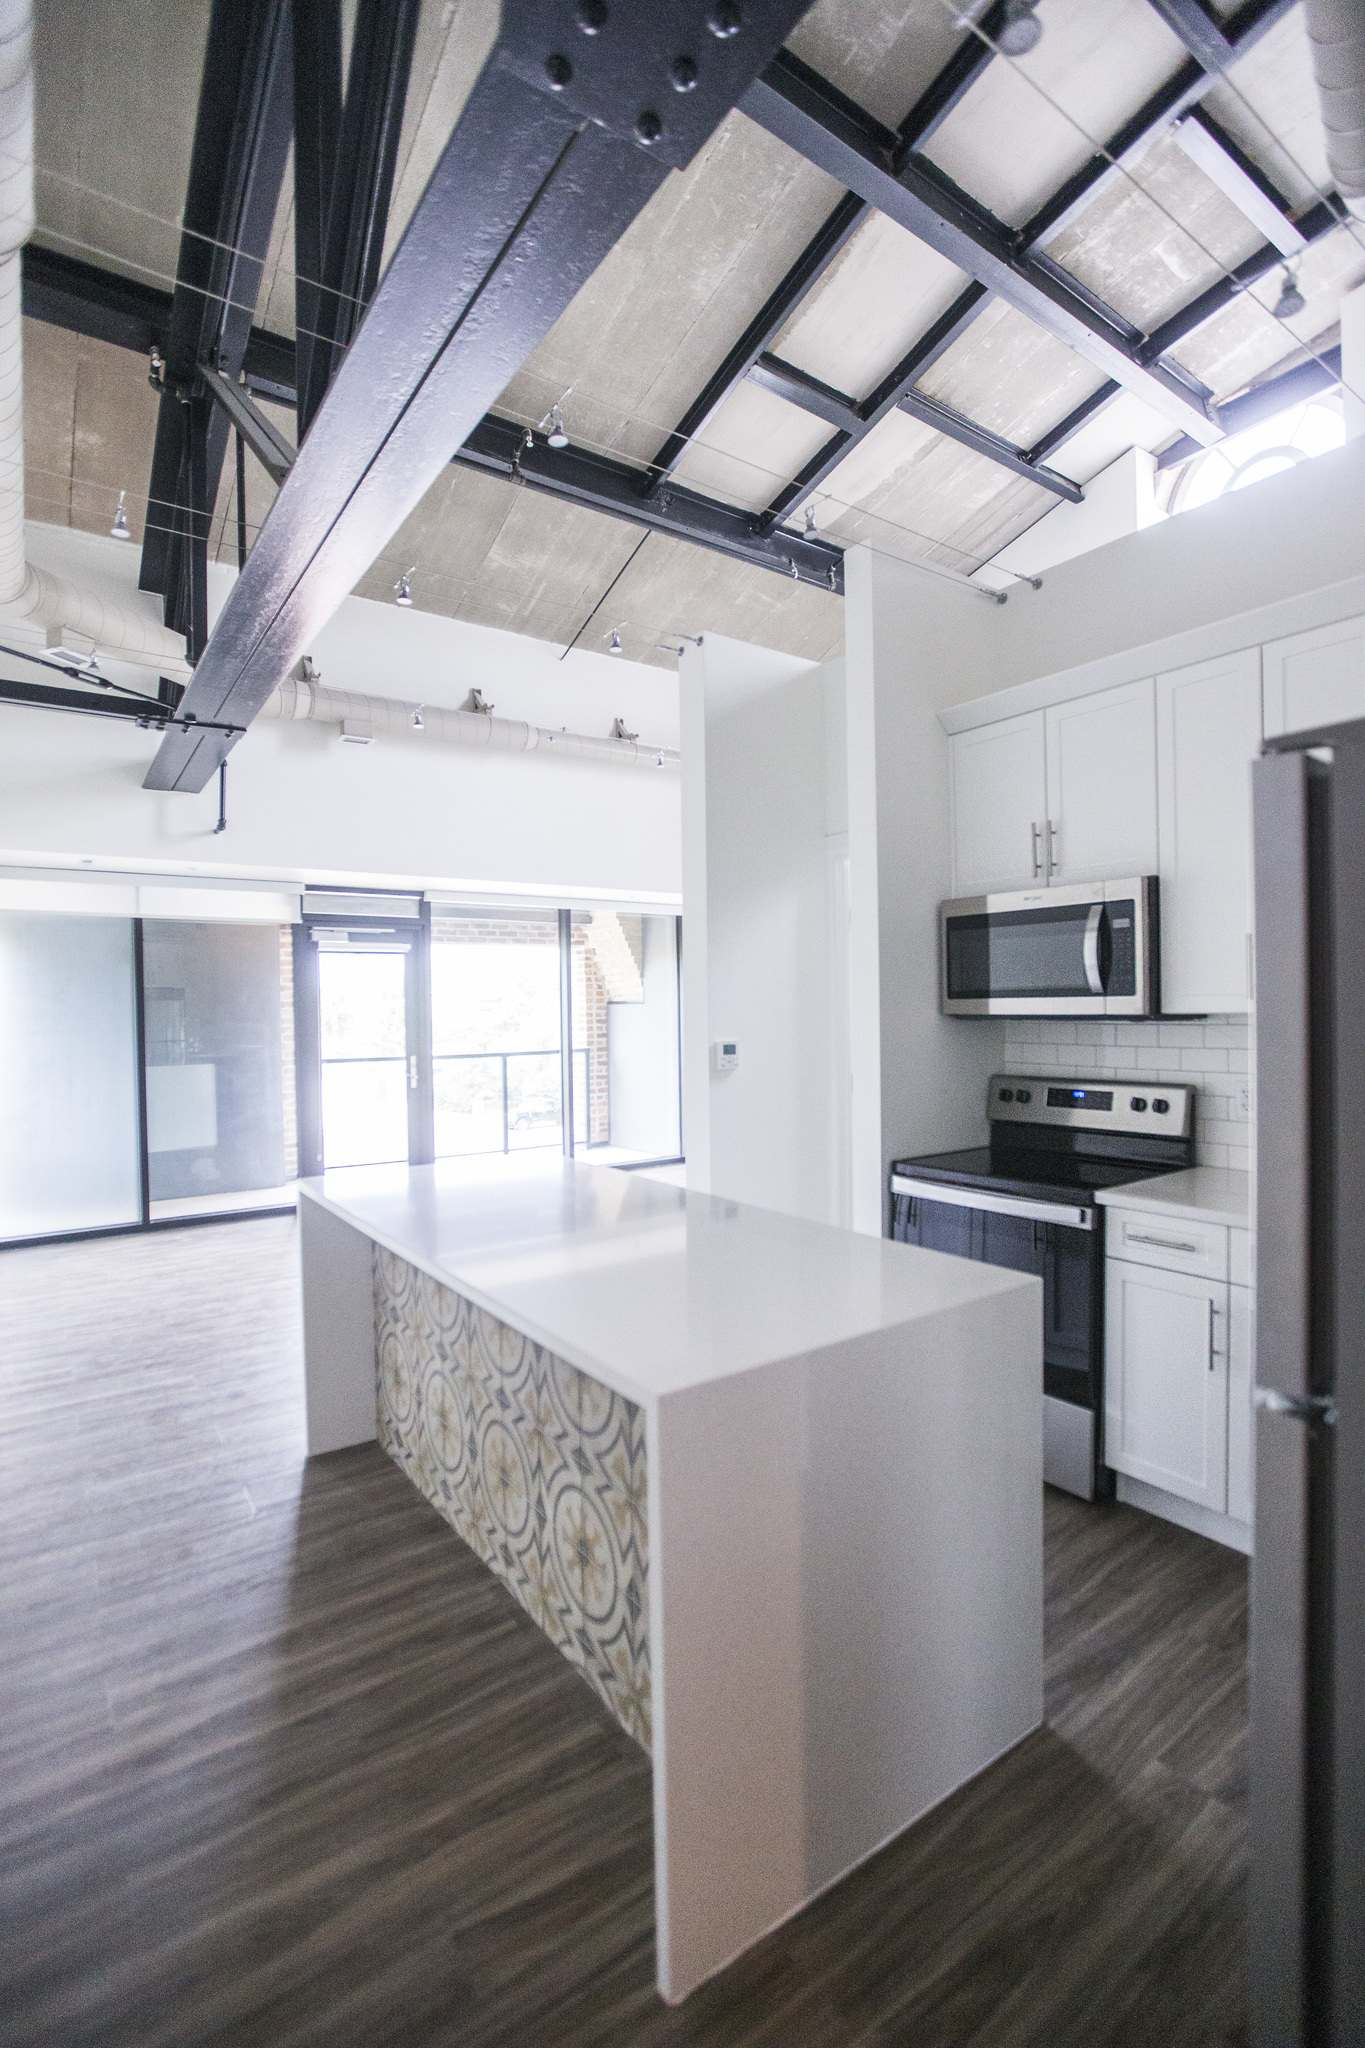 The units in the newly renovated Uptown Lofts on Academy Road are posh, and still provide praise to the past. (MIKAELA MACKENZIE / WINNIPEG FREE PRESS)